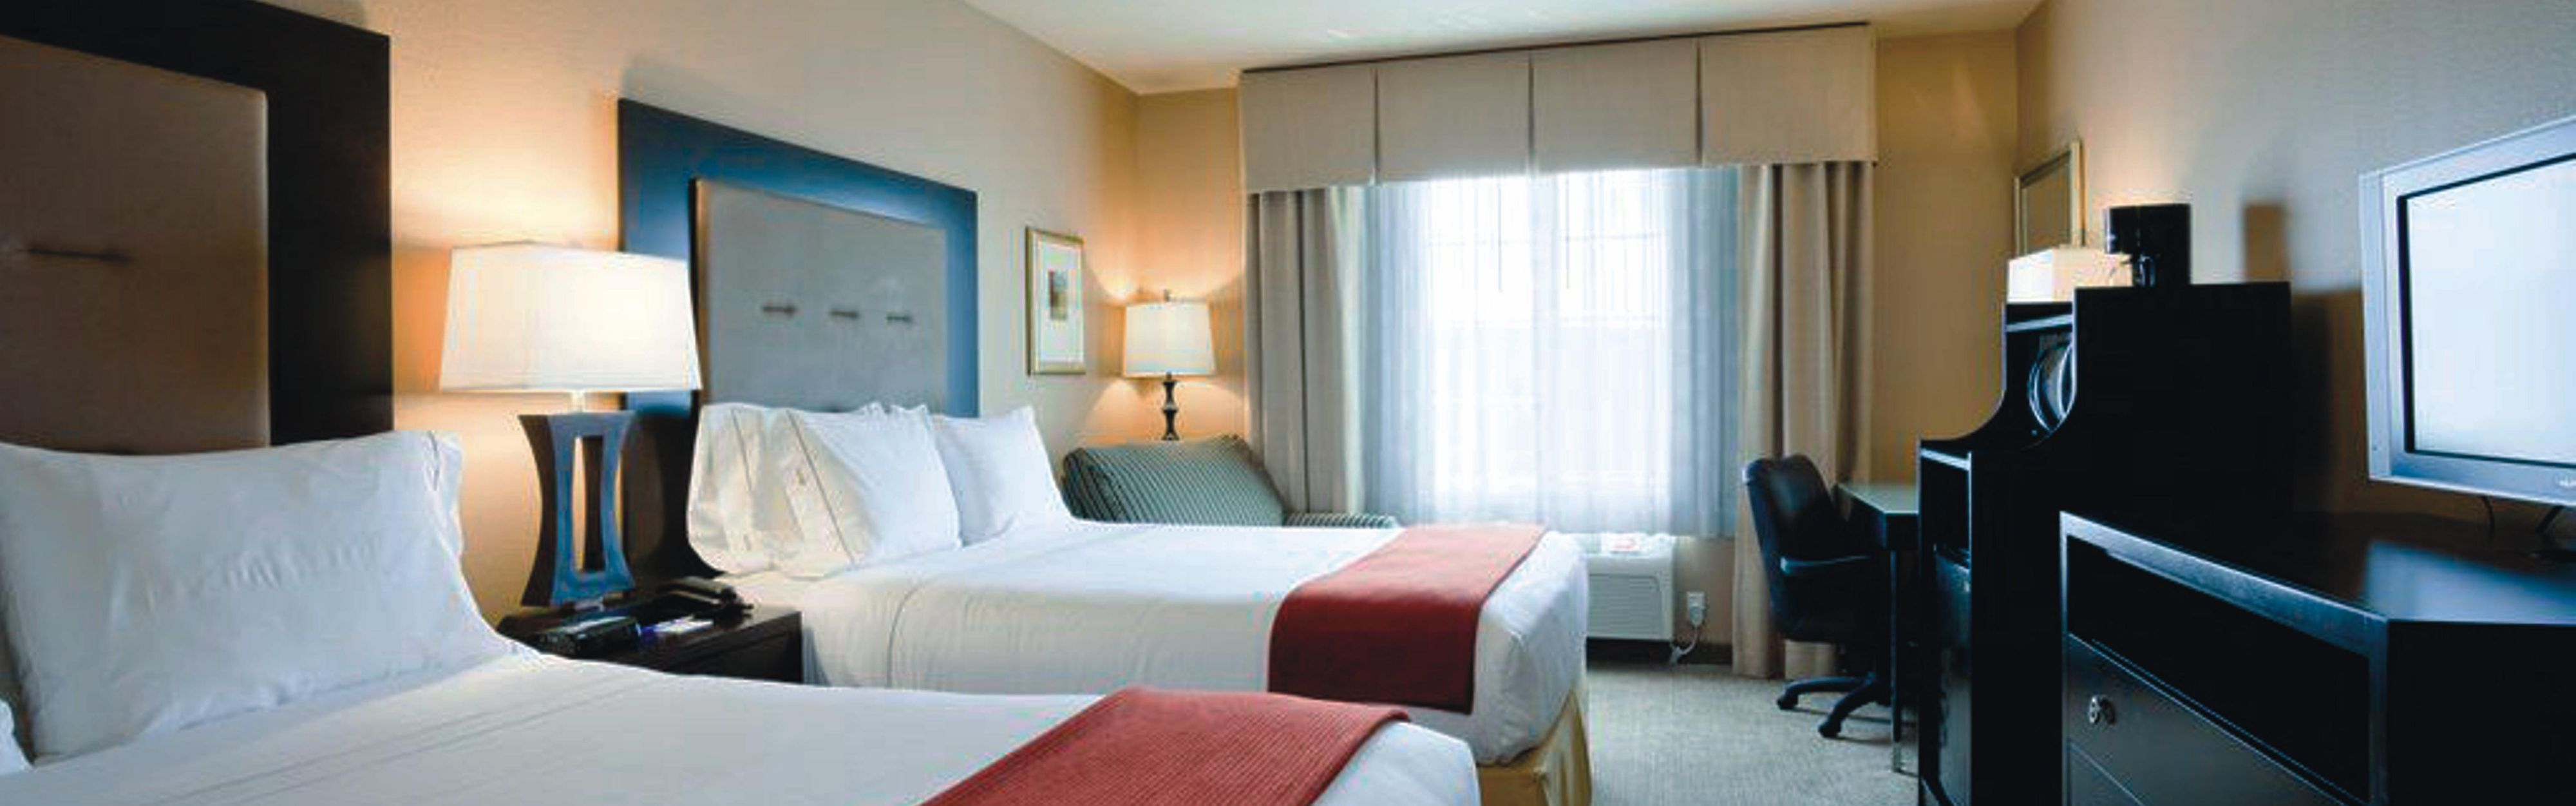 Holiday Inn Express Portland East - Troutdale image 1